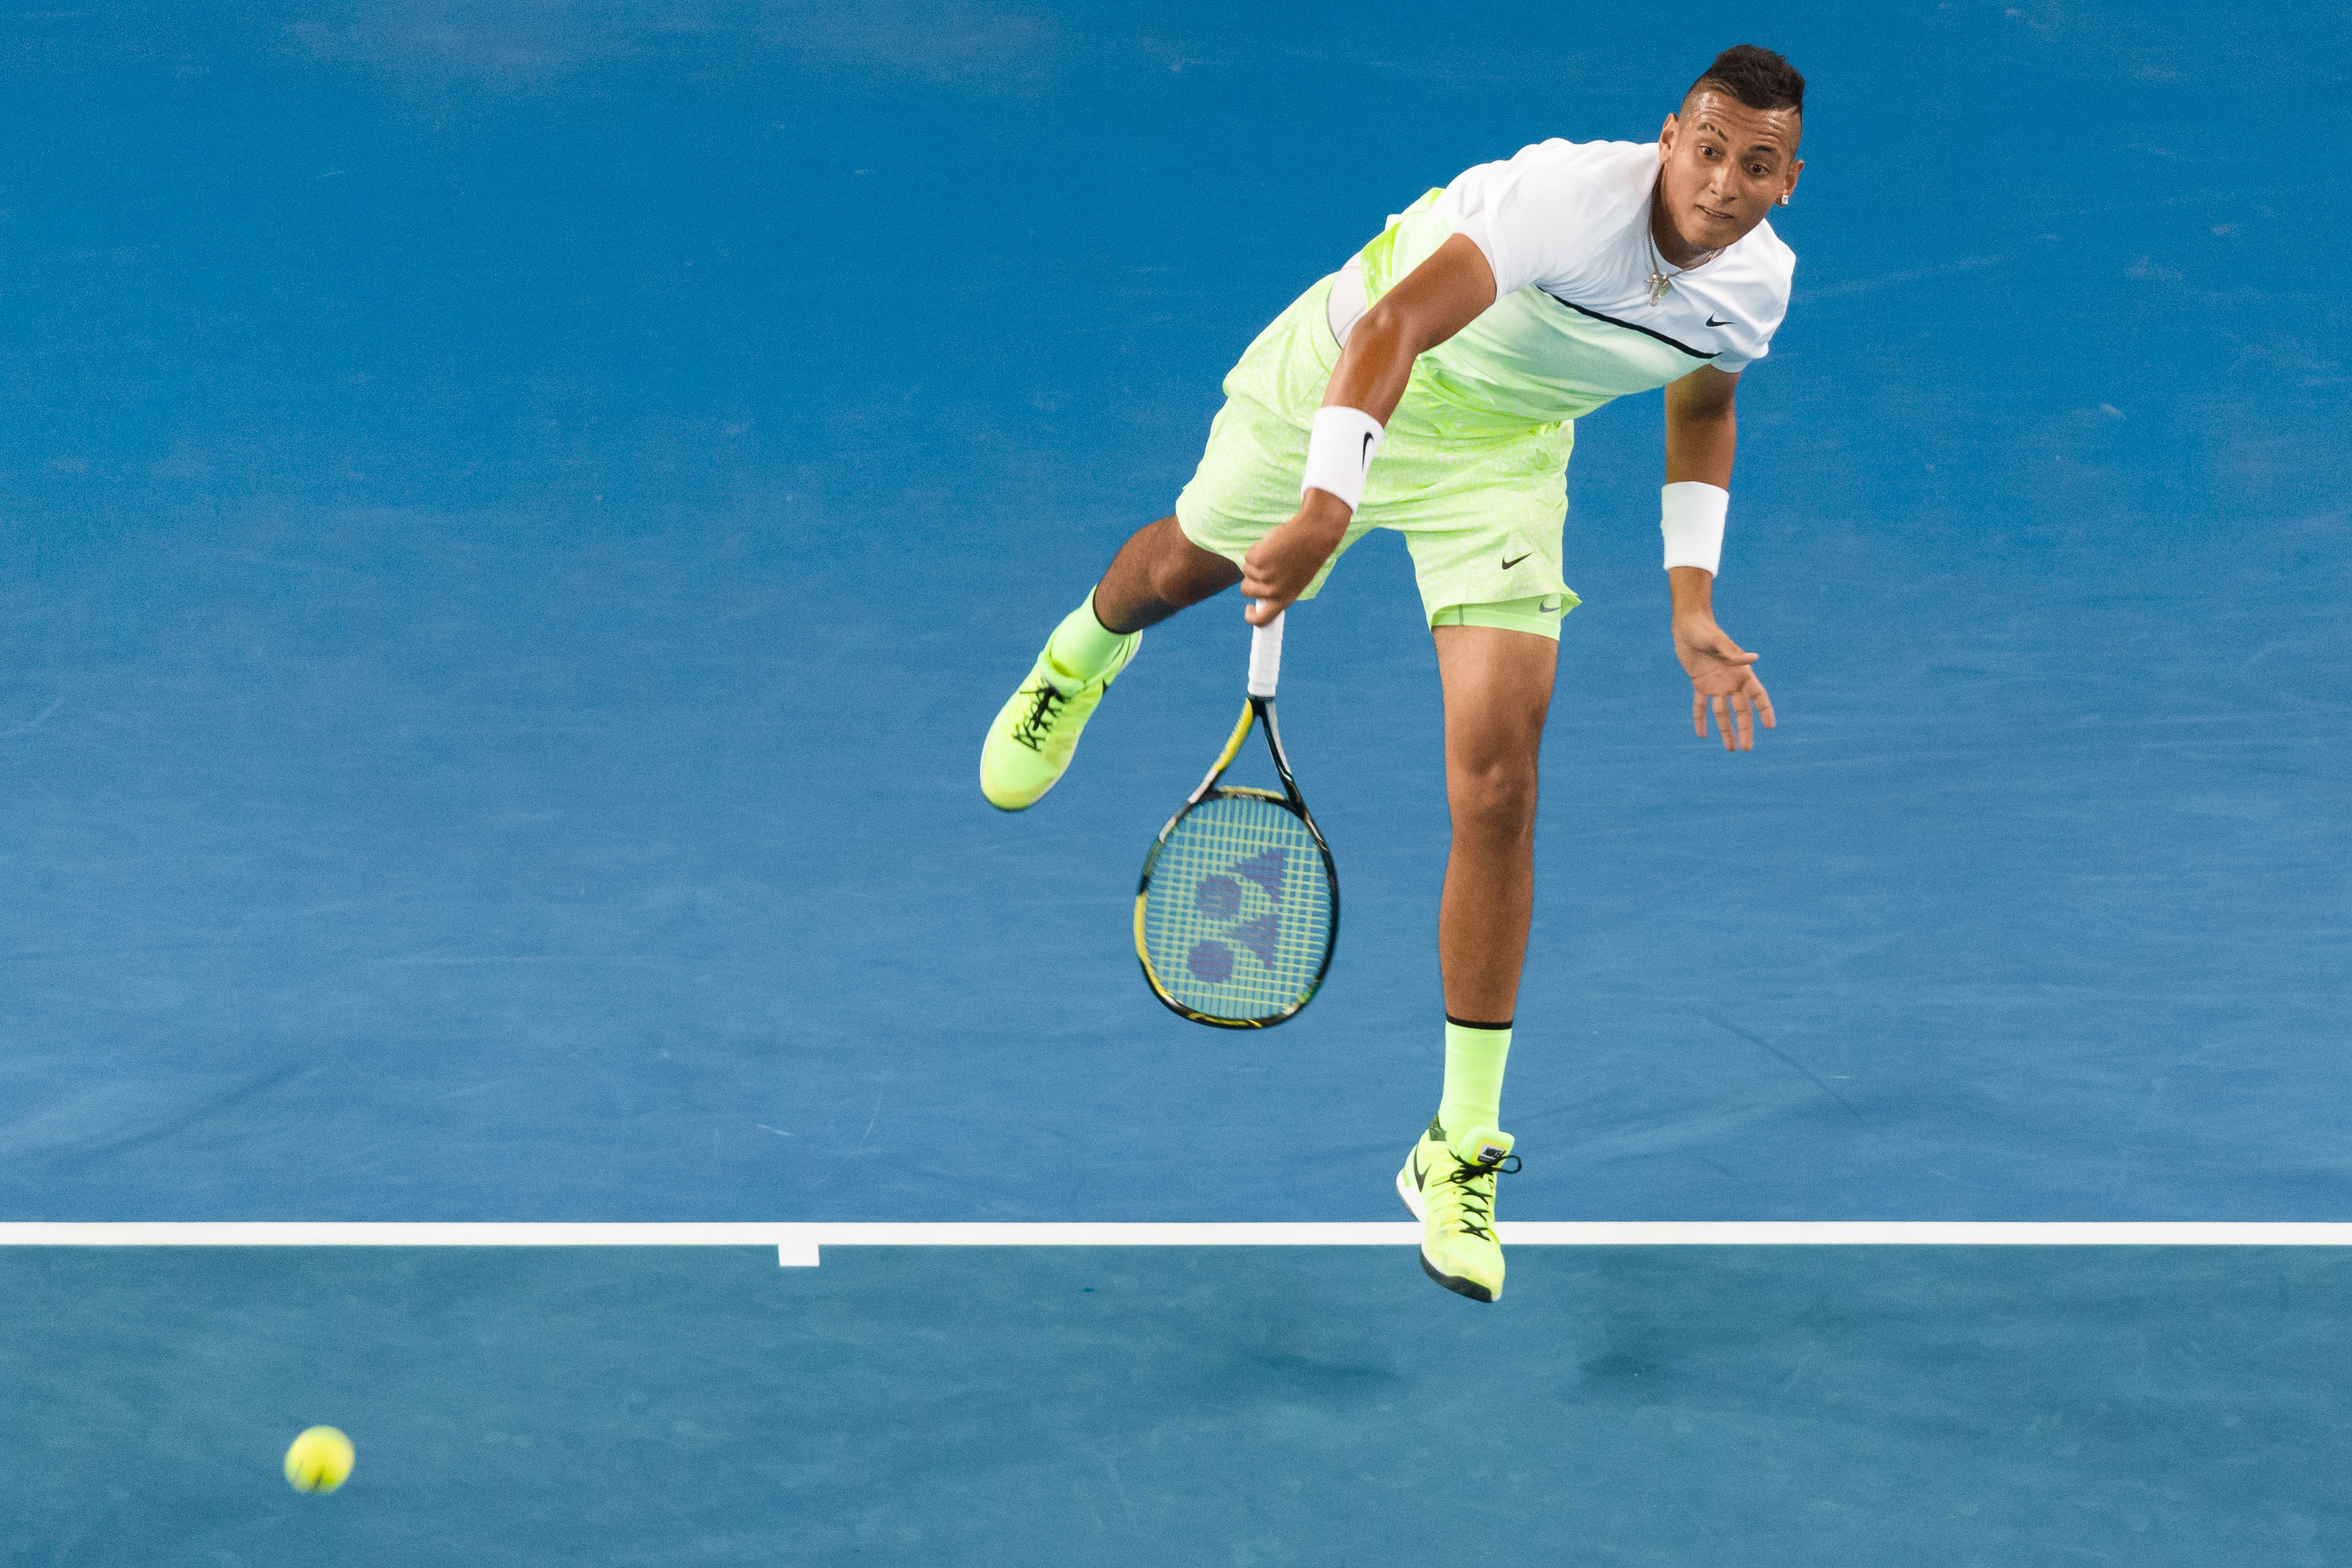 It's the fluorescent version of Dimitrov's kit and the 19-year-old has lit it up.